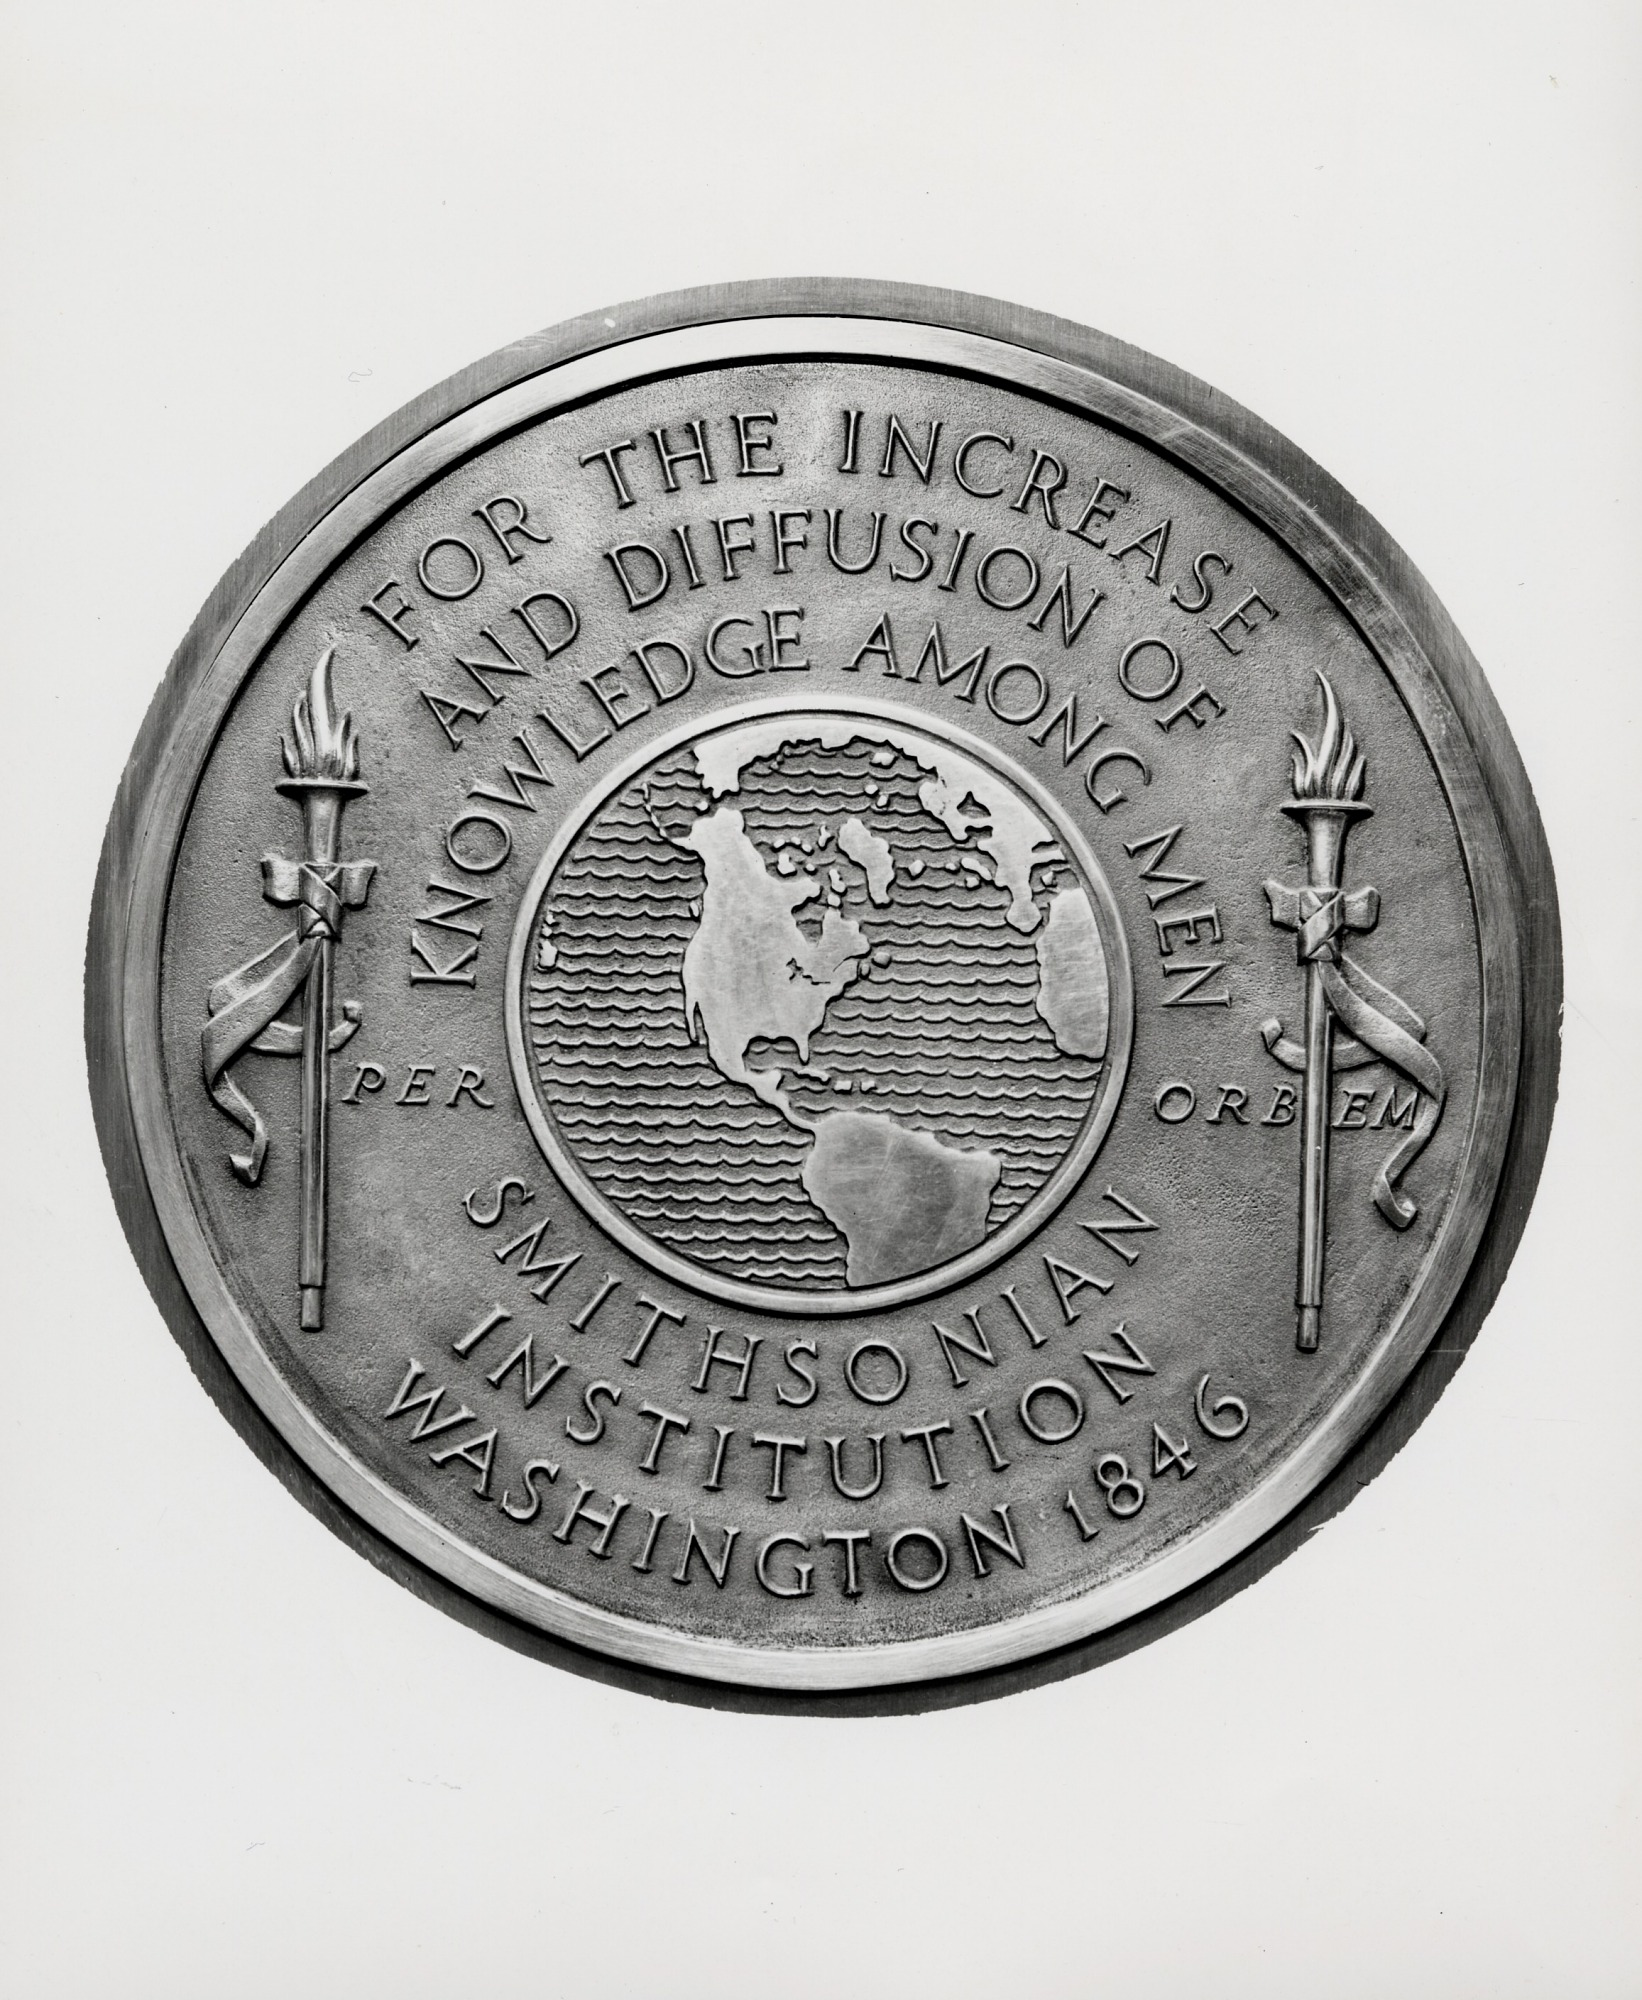 Smithsonian Seal, by Unknown, 1893 or later, Smithsonian Archives - History Div, 2003-19534.